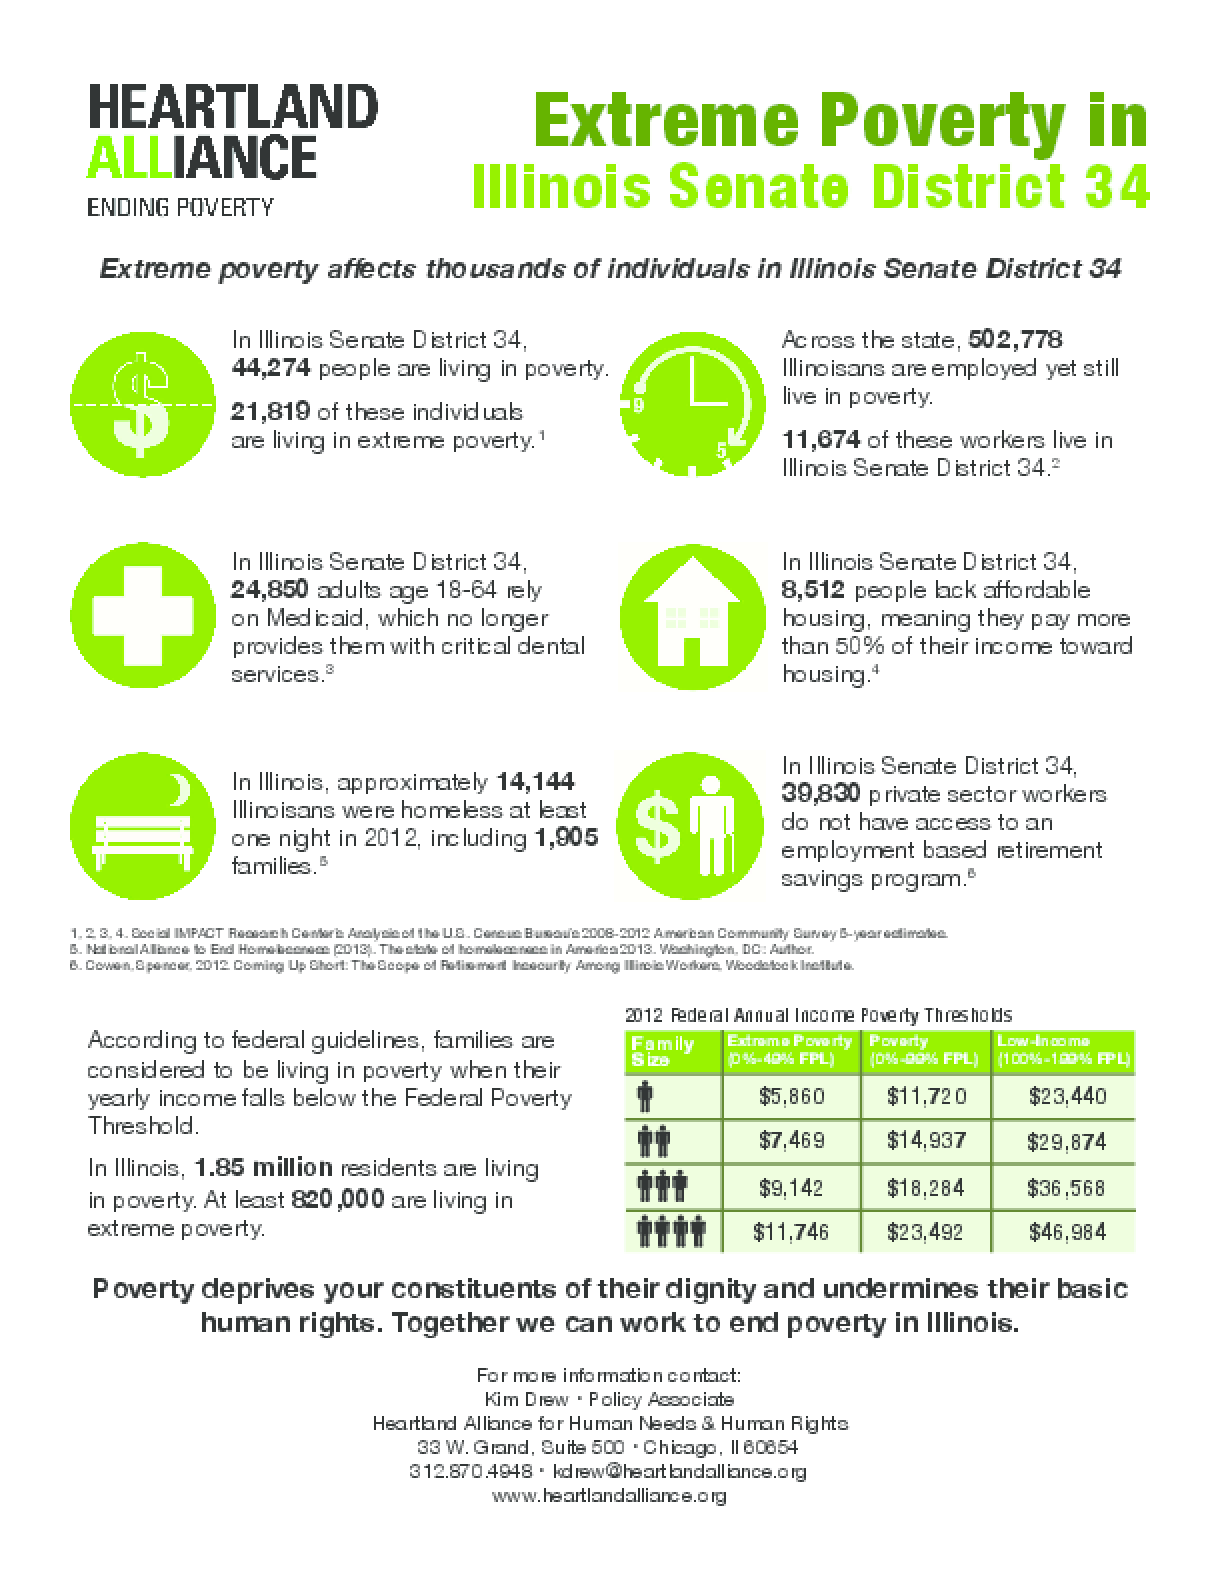 Poverty Fact Sheet for Illinois Senate District 34